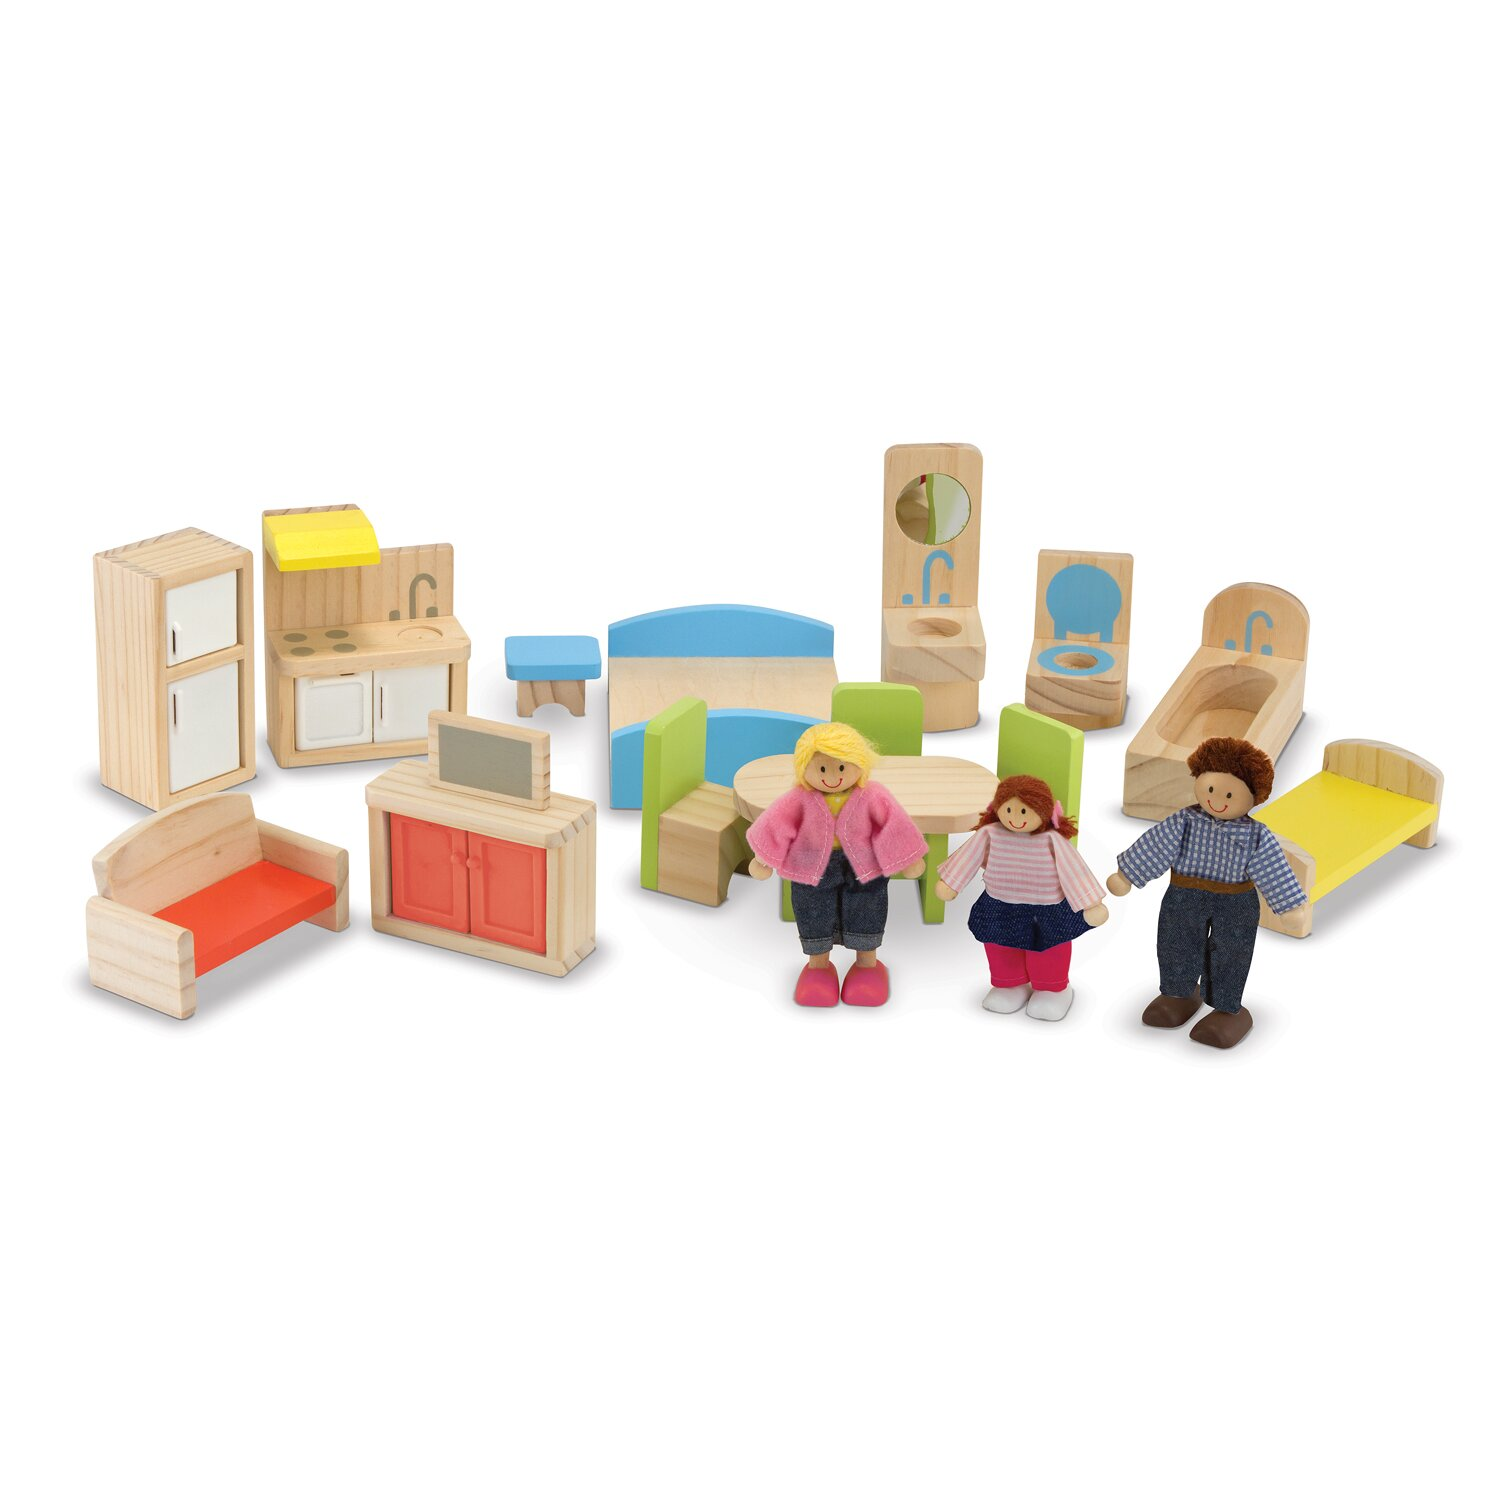 Melissa Doug 19 Piece Hi Rise Dollhouse Set Reviews Wayfair